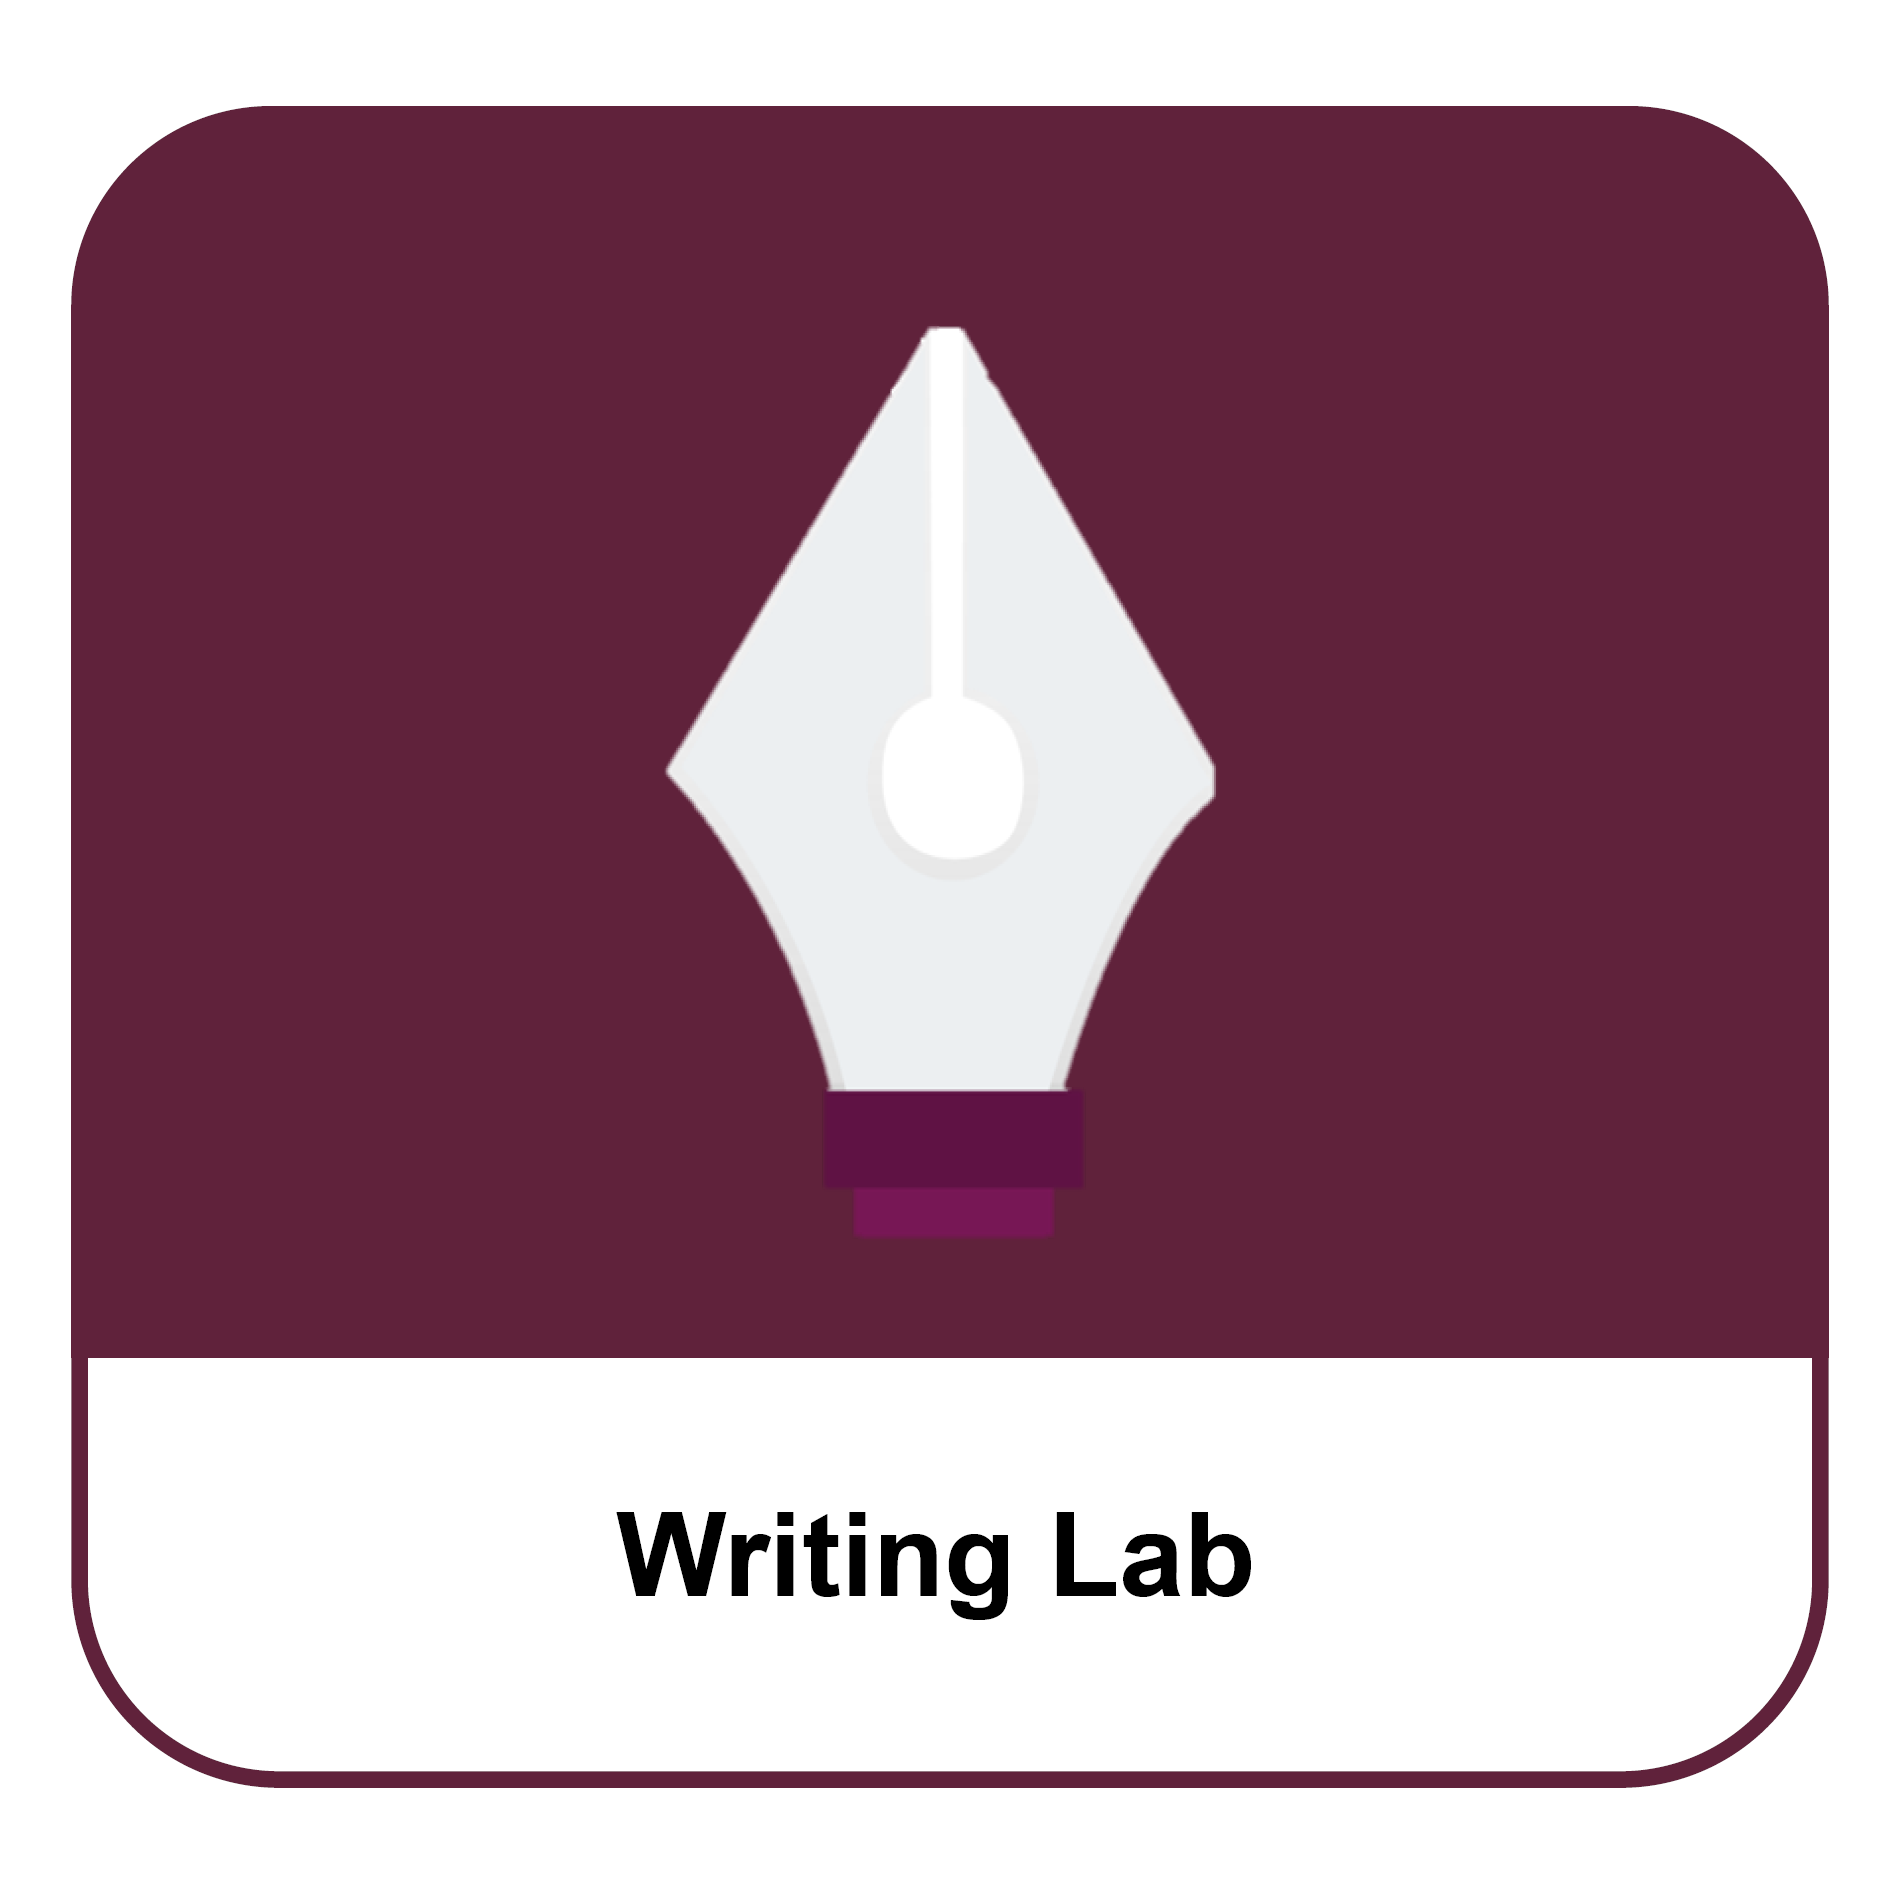 writing lab resources icon.png